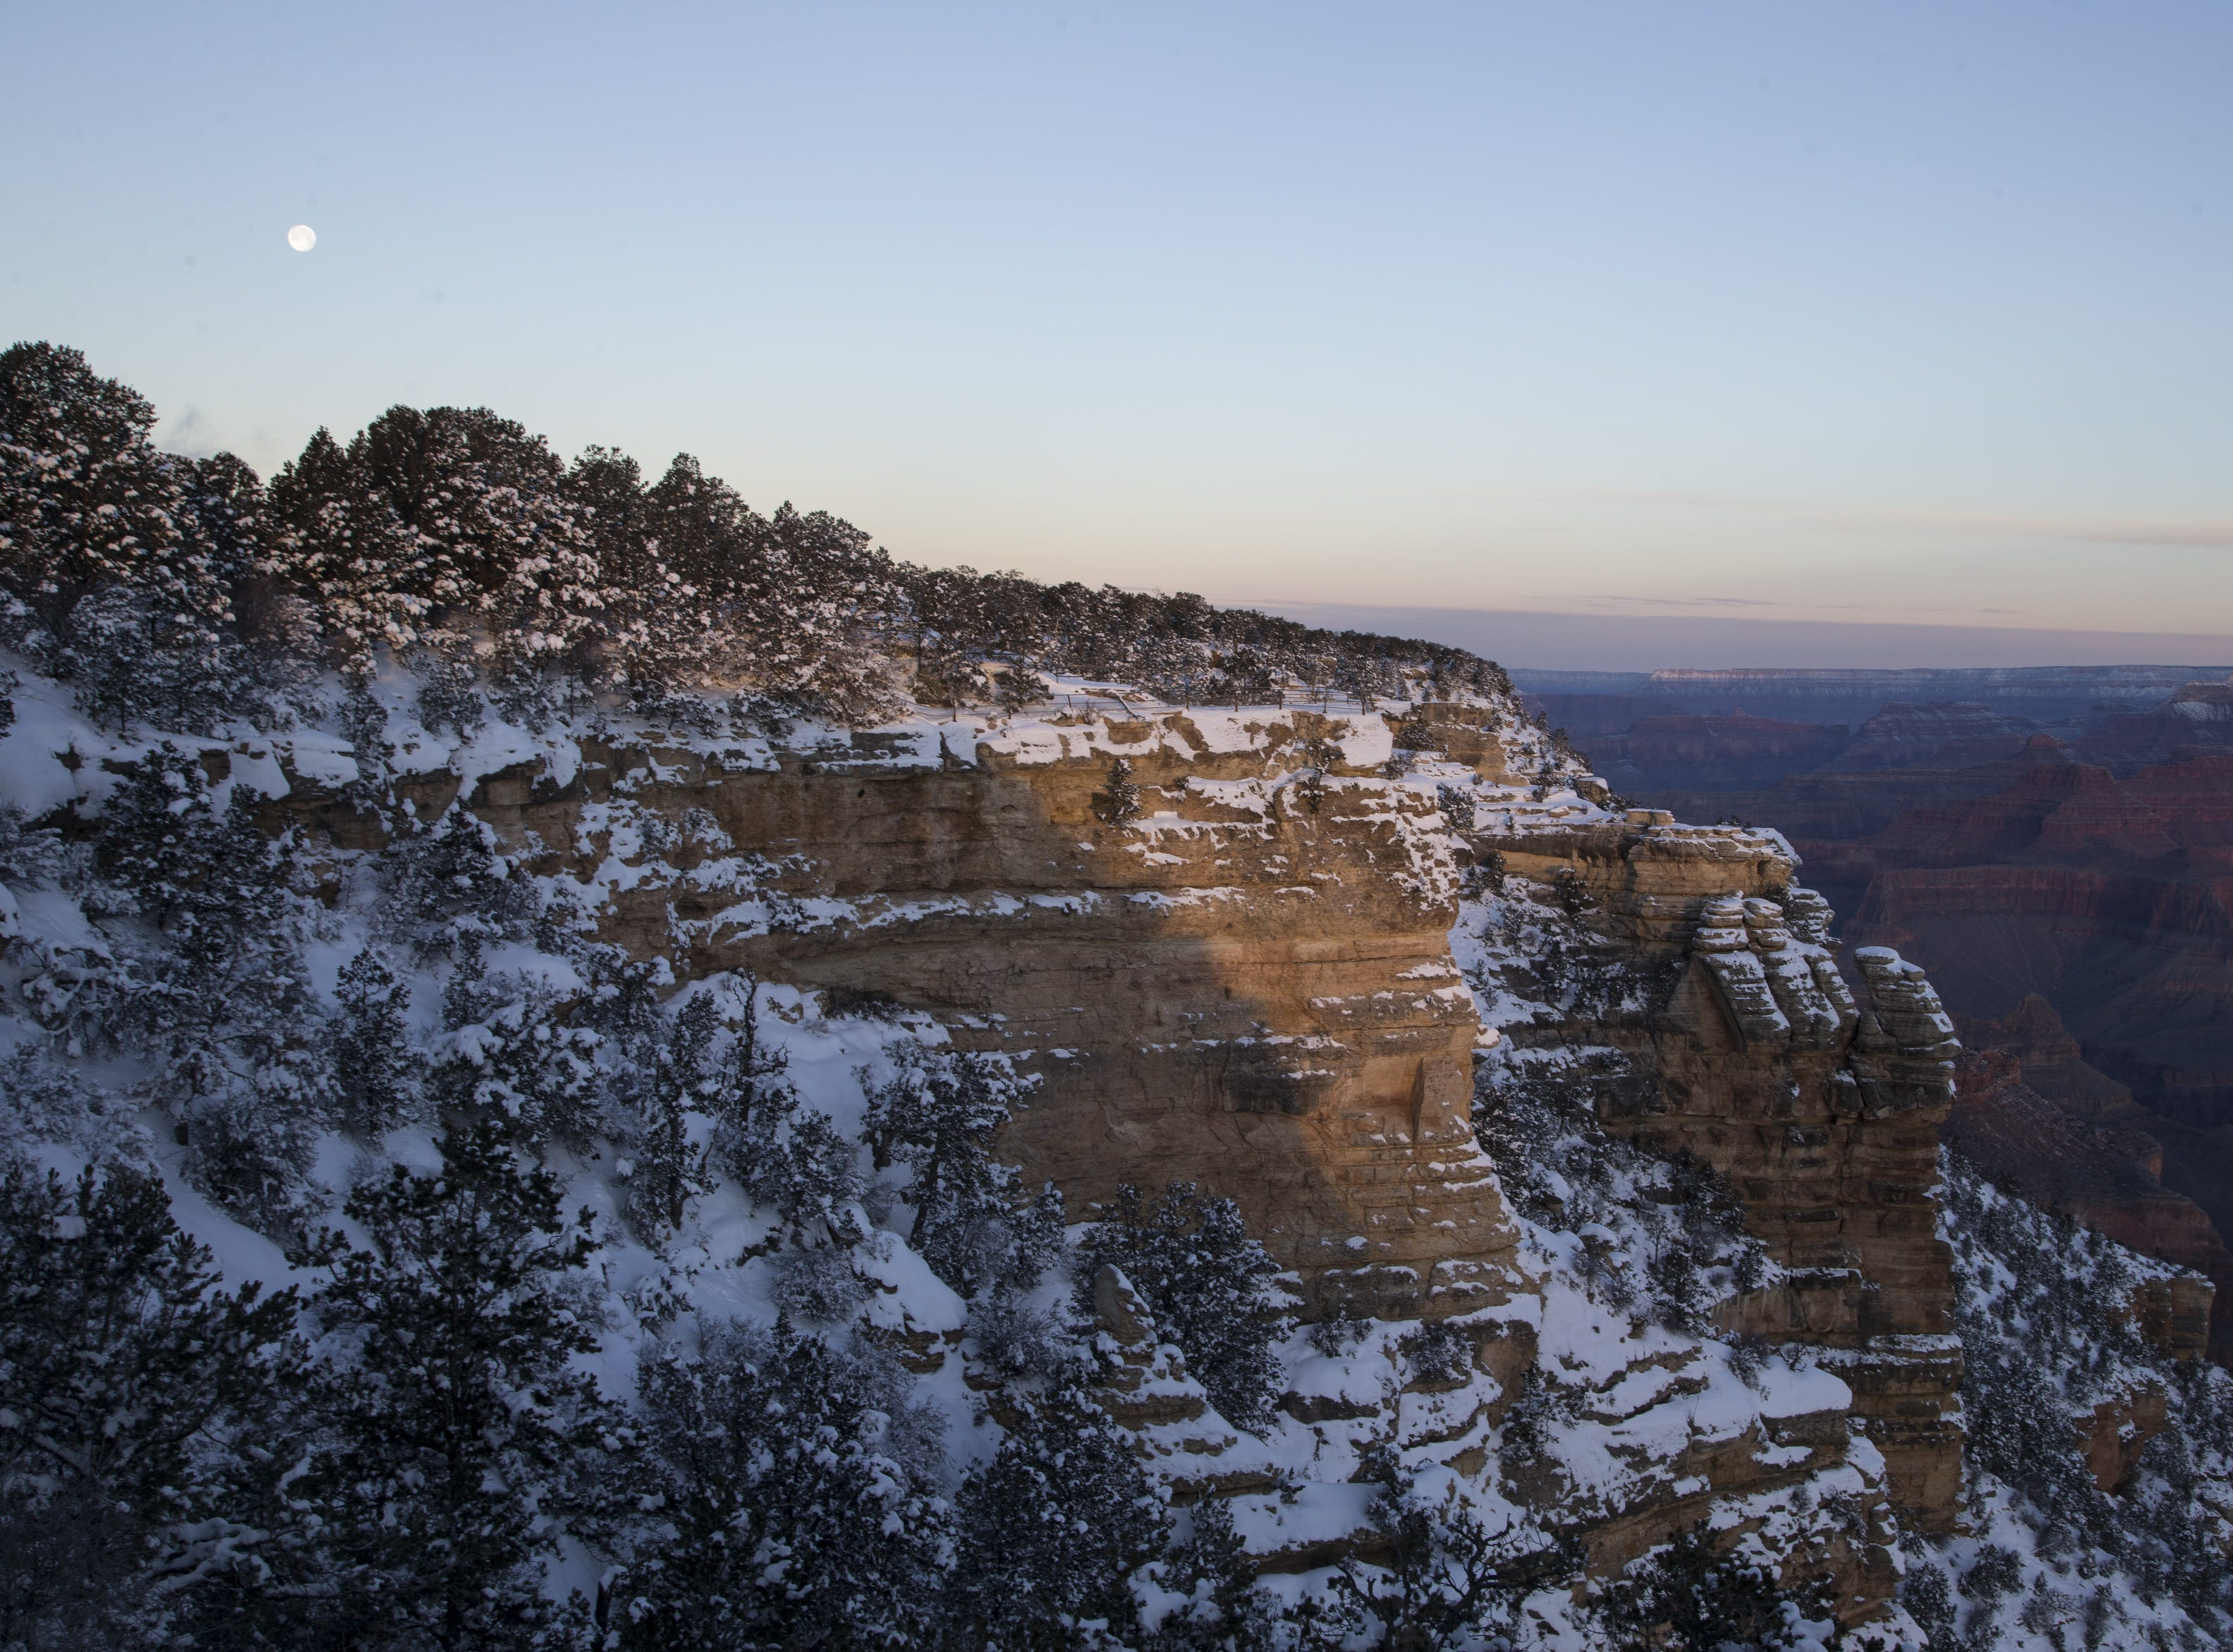 The full moon sets at Mather Point on Feb. 20, 2019, at the South Rim of Grand Canyon National Park, Arizona. The temperature at sunrise was 2 degrees.